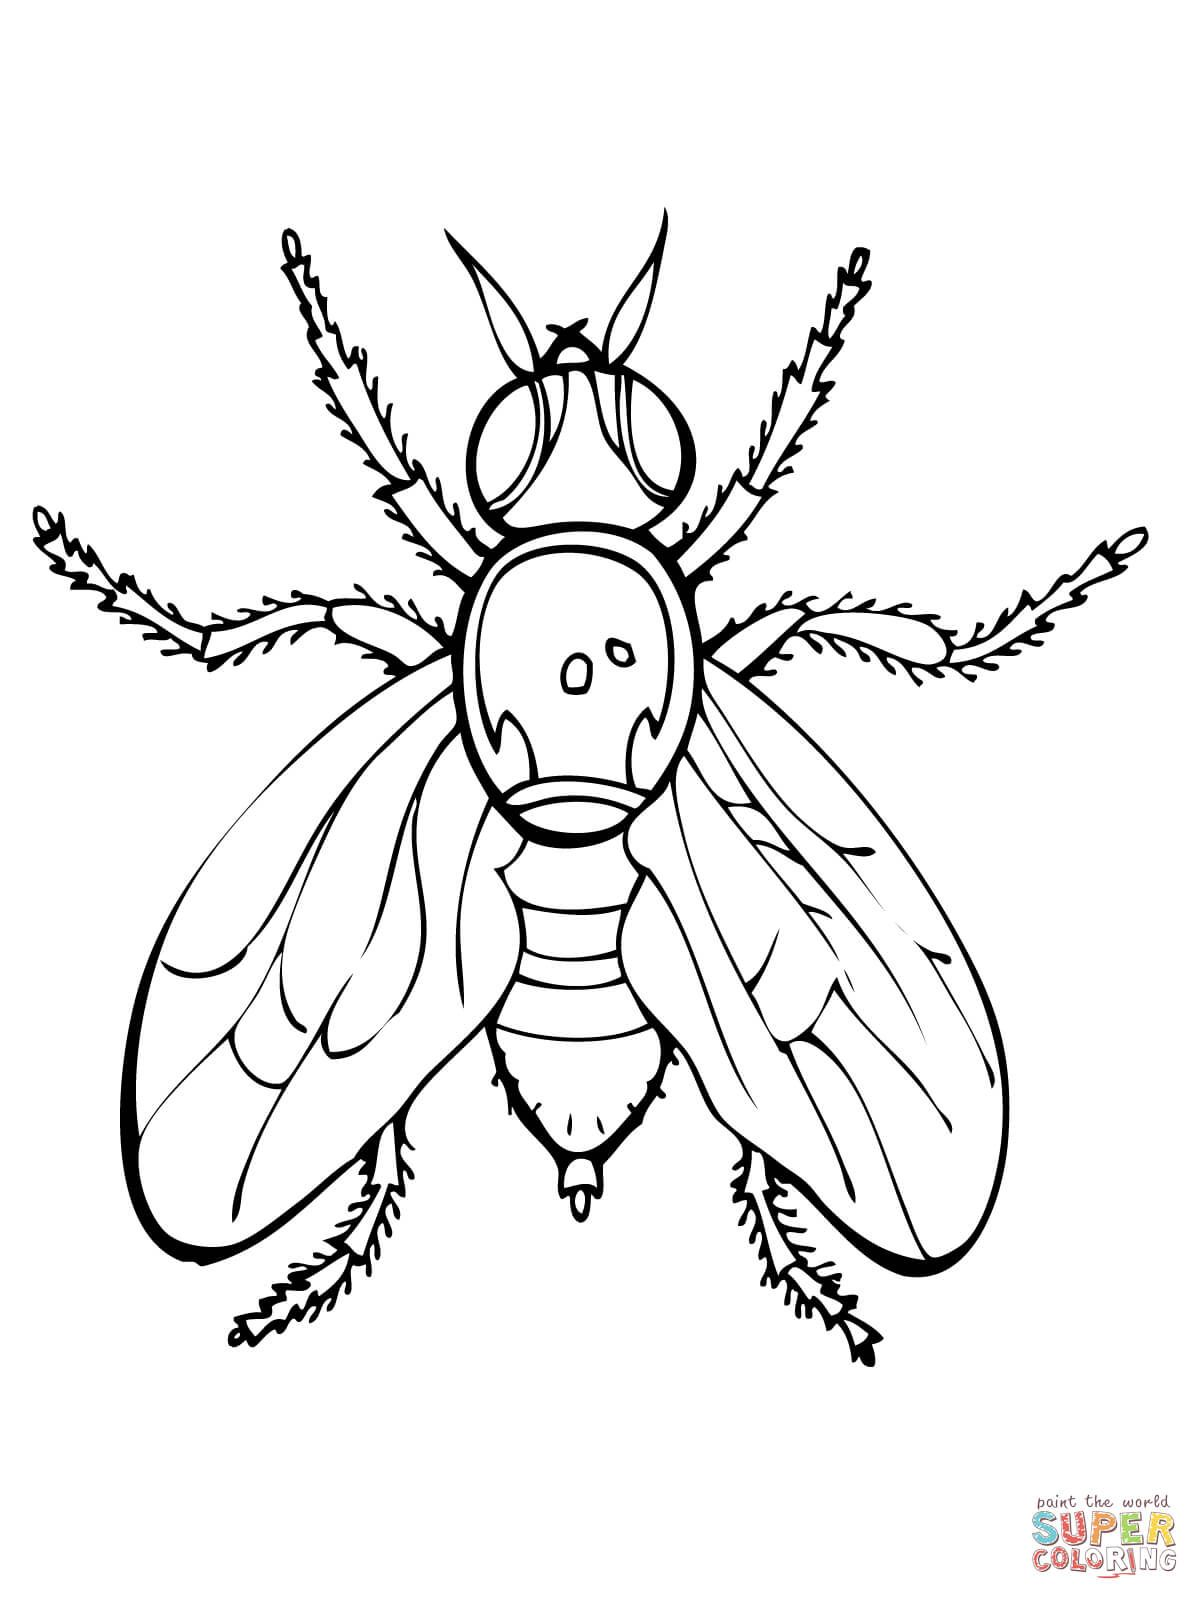 Fruit Fly Super Coloring Ten Plagues Coloring Pages